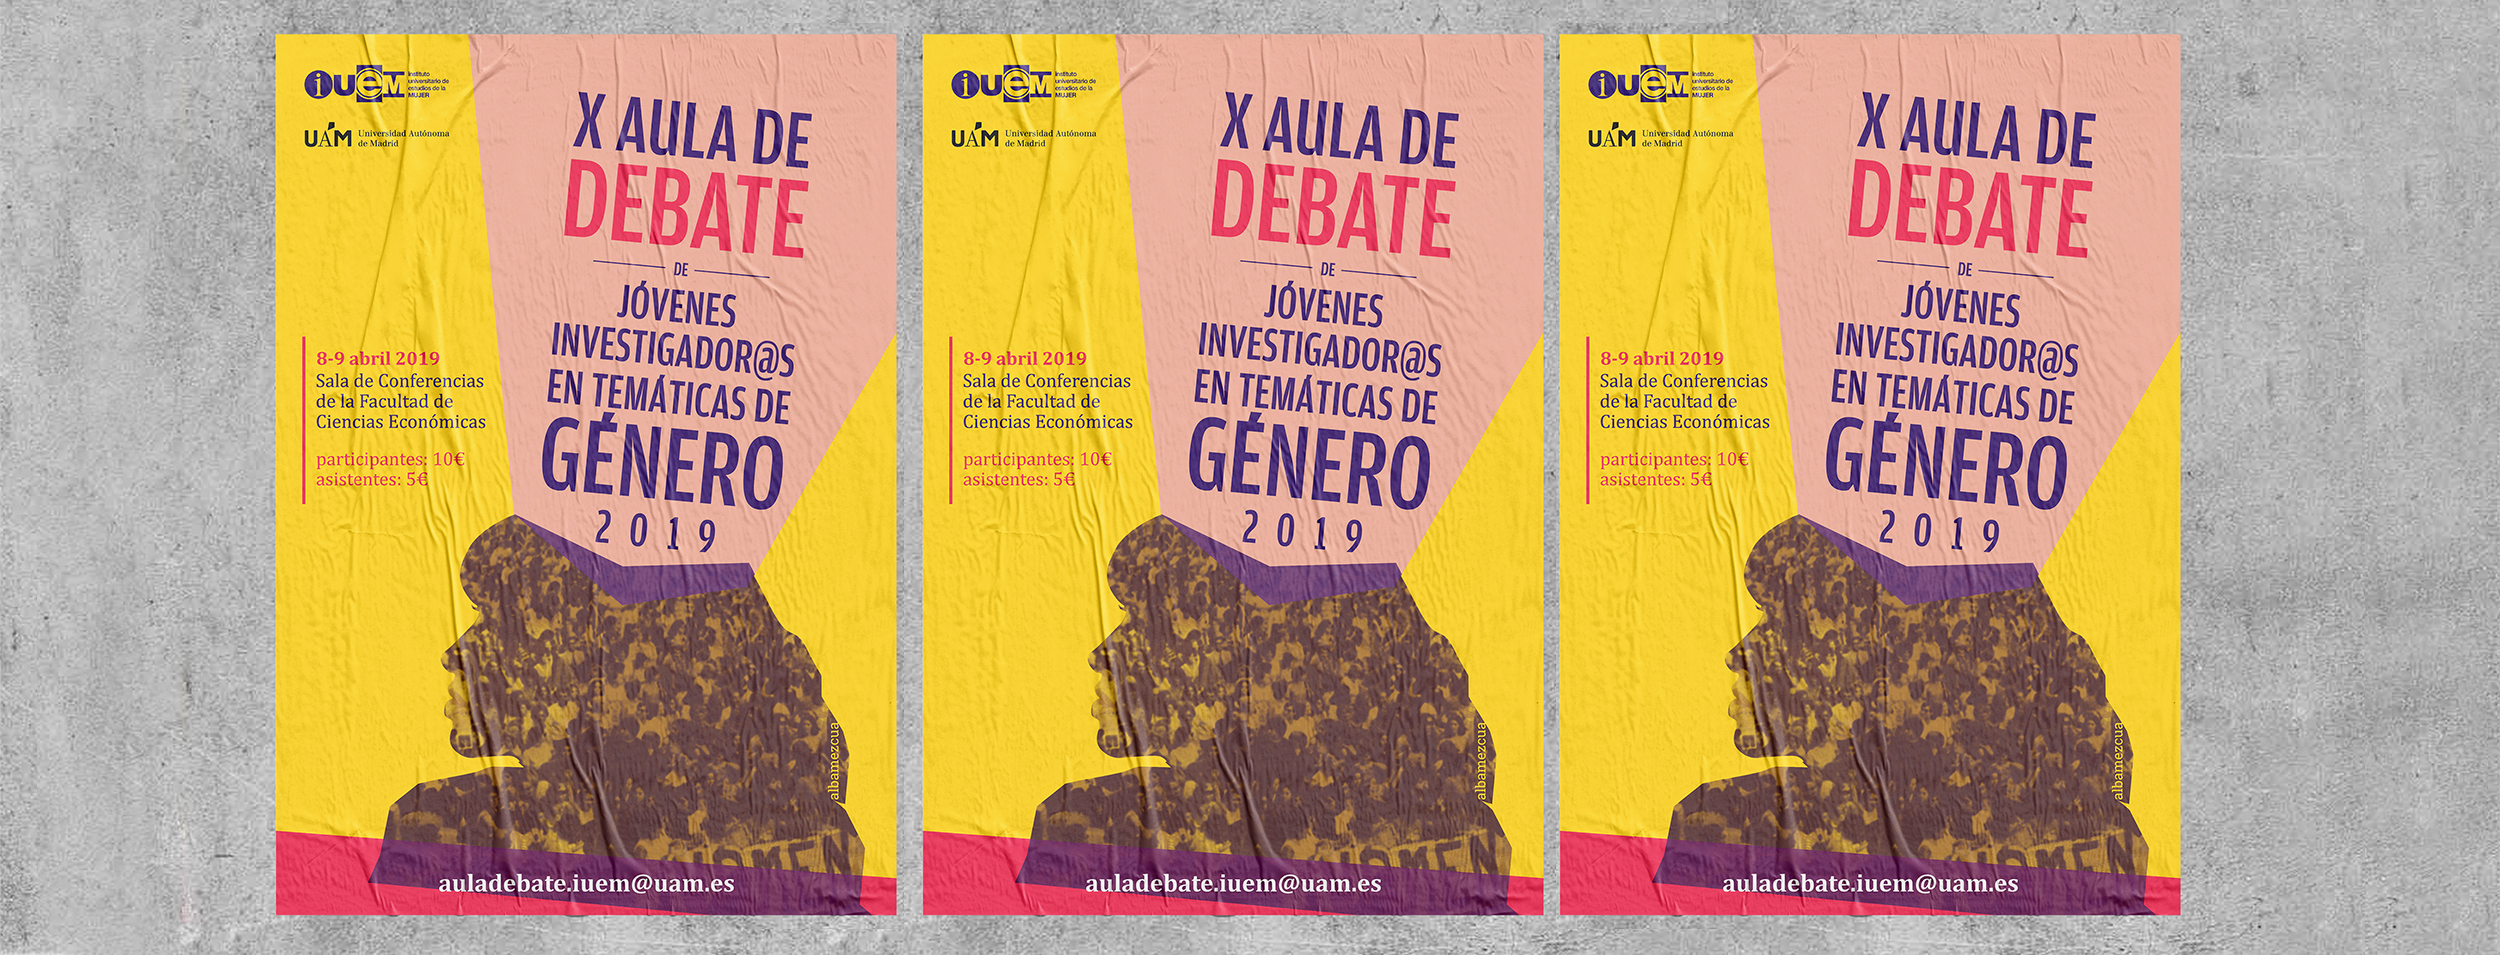 The image shows three equal posters of the X Debate Camp taped to a concrete wall. The poster shows the silhouette of the head of a person, presumably a woman, whose interior shows the texture of a demonstration. From the head comes a form that collects the title of the event and the data.